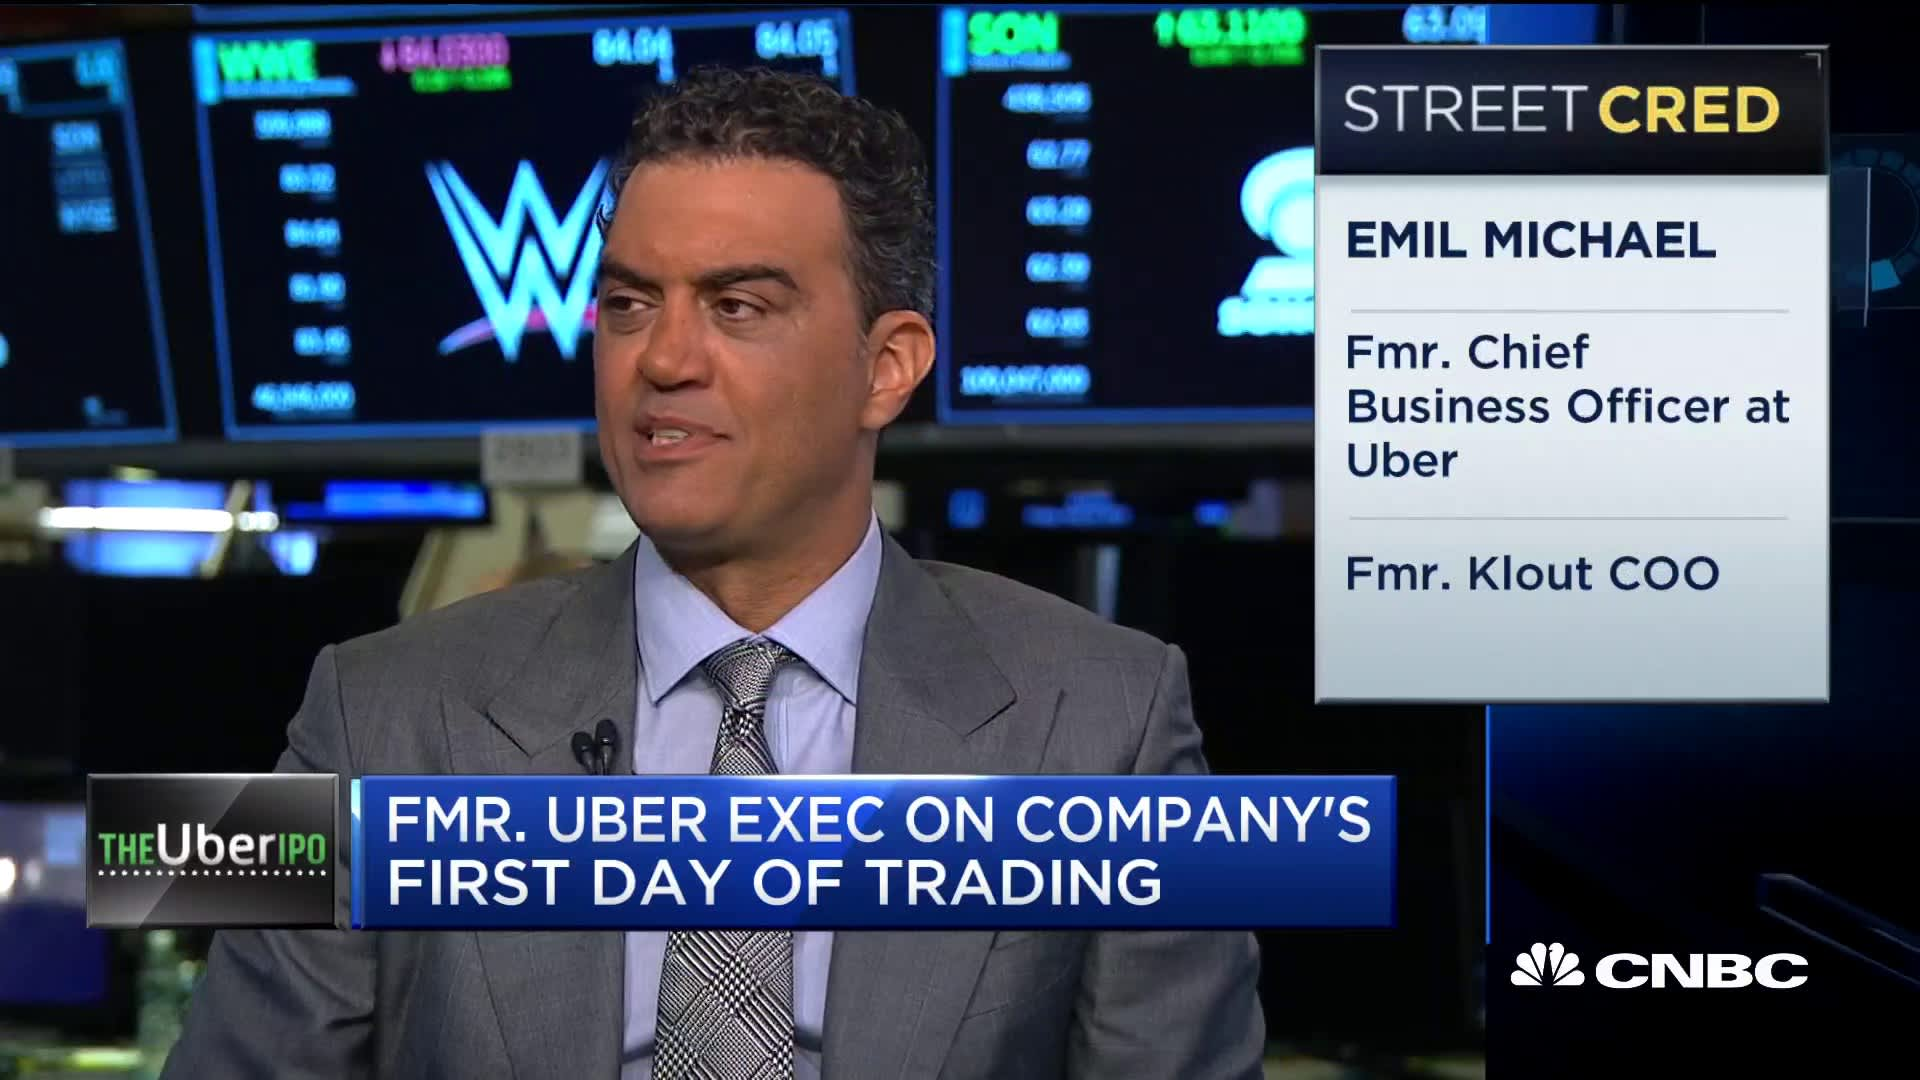 Uber's story isn't fully understood by investors yet, says former Uber exec